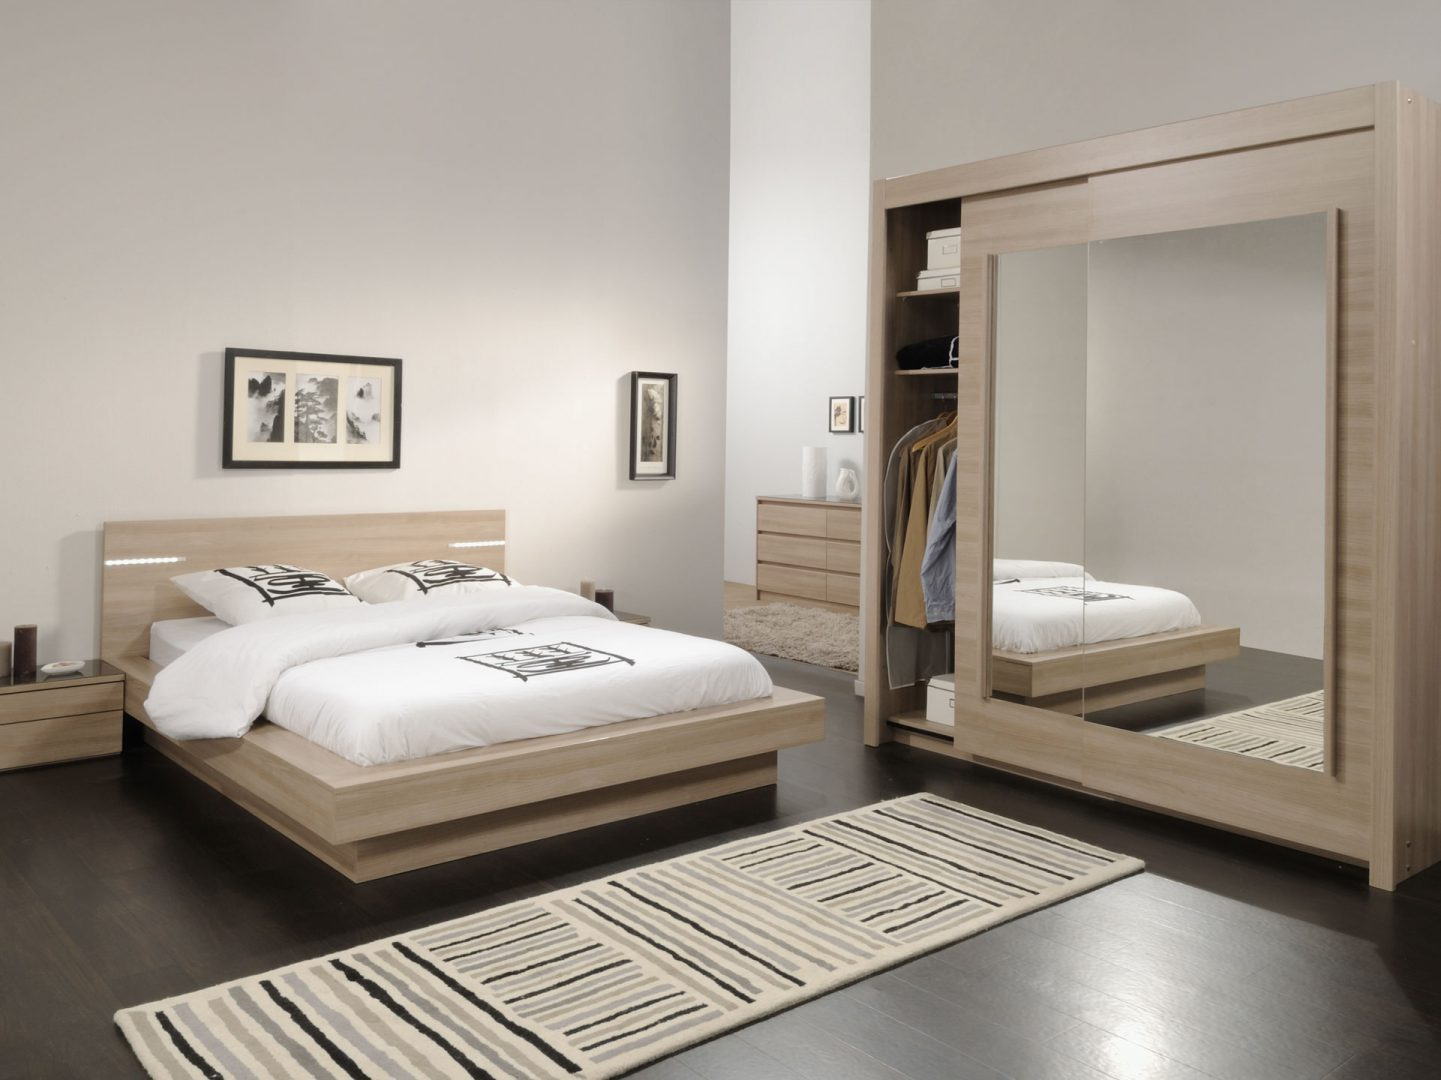 decoraci n feng shui para dormitorios hoy lowcost. Black Bedroom Furniture Sets. Home Design Ideas